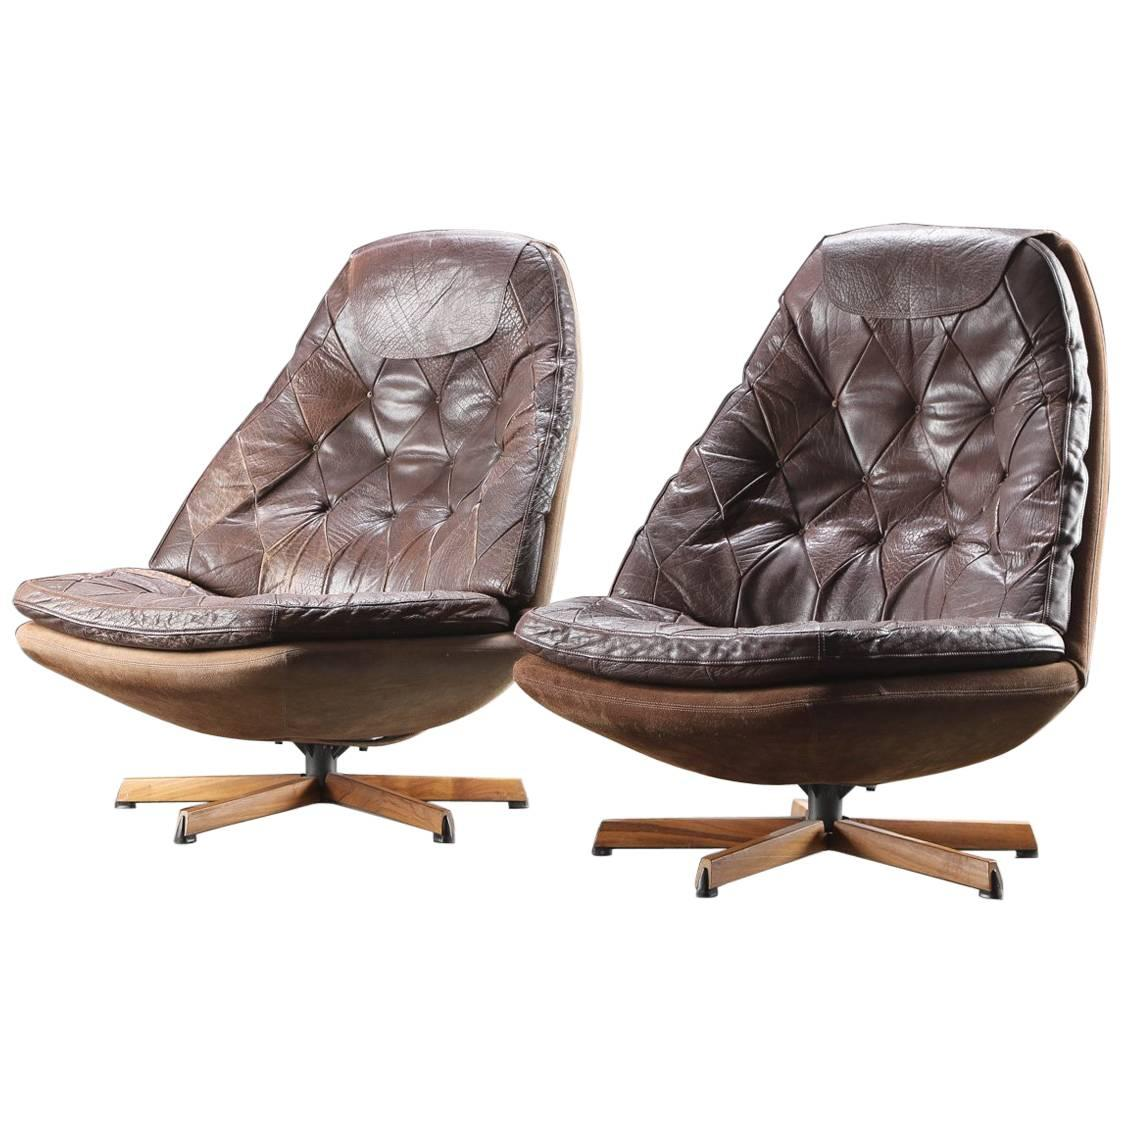 Pair of Danish Leather Upholstered Swivel Chairs by Madsen & Schubell